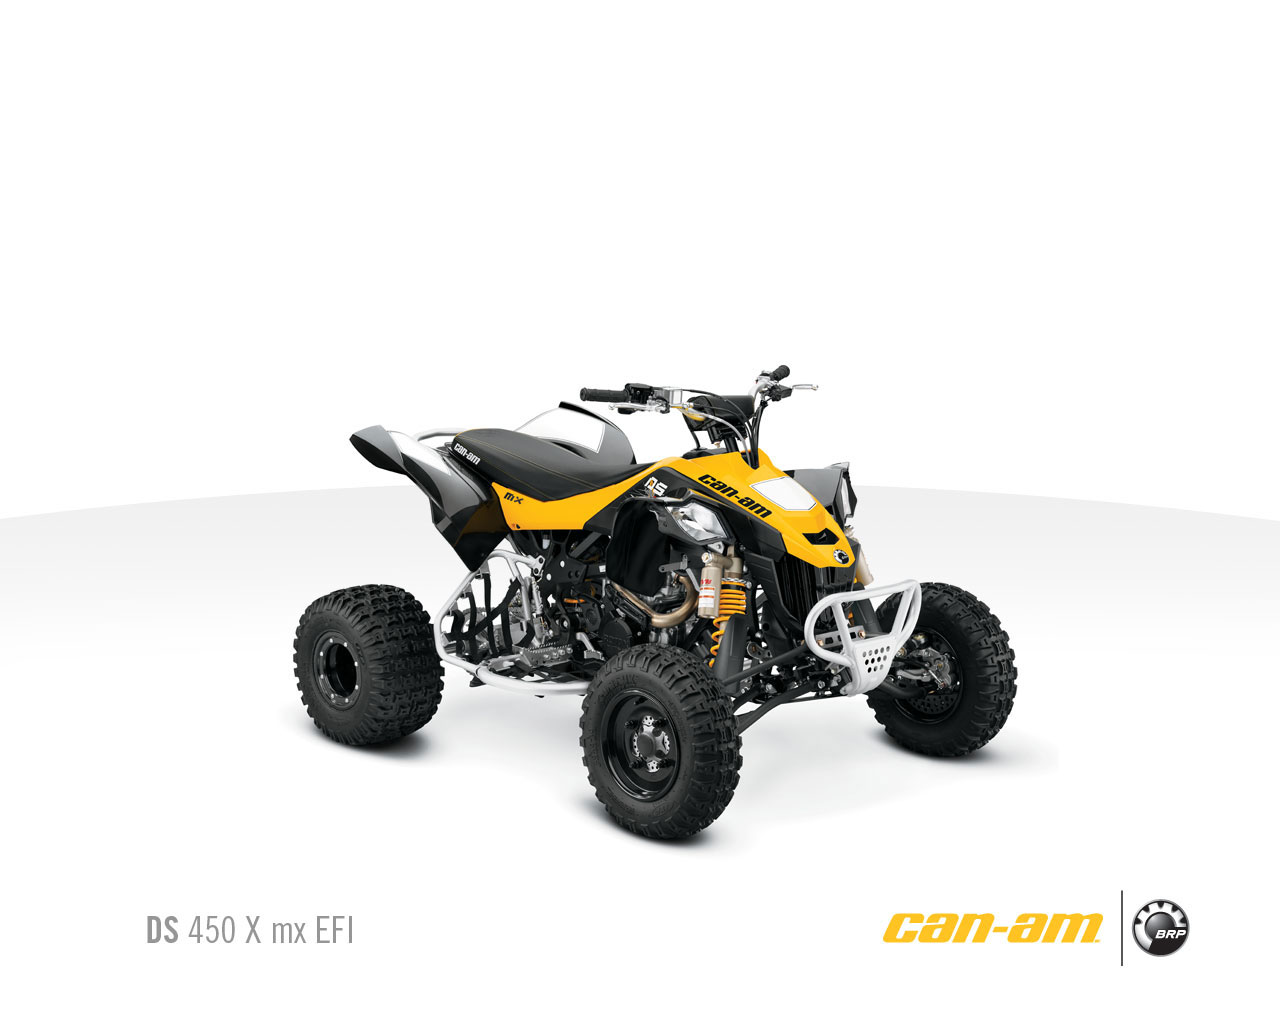 CAN AM BRPDS450XMX 3696_1 can am brp ds 450 x mx specs 2010, 2011 autoevolution ds 450 wiring diagram at n-0.co